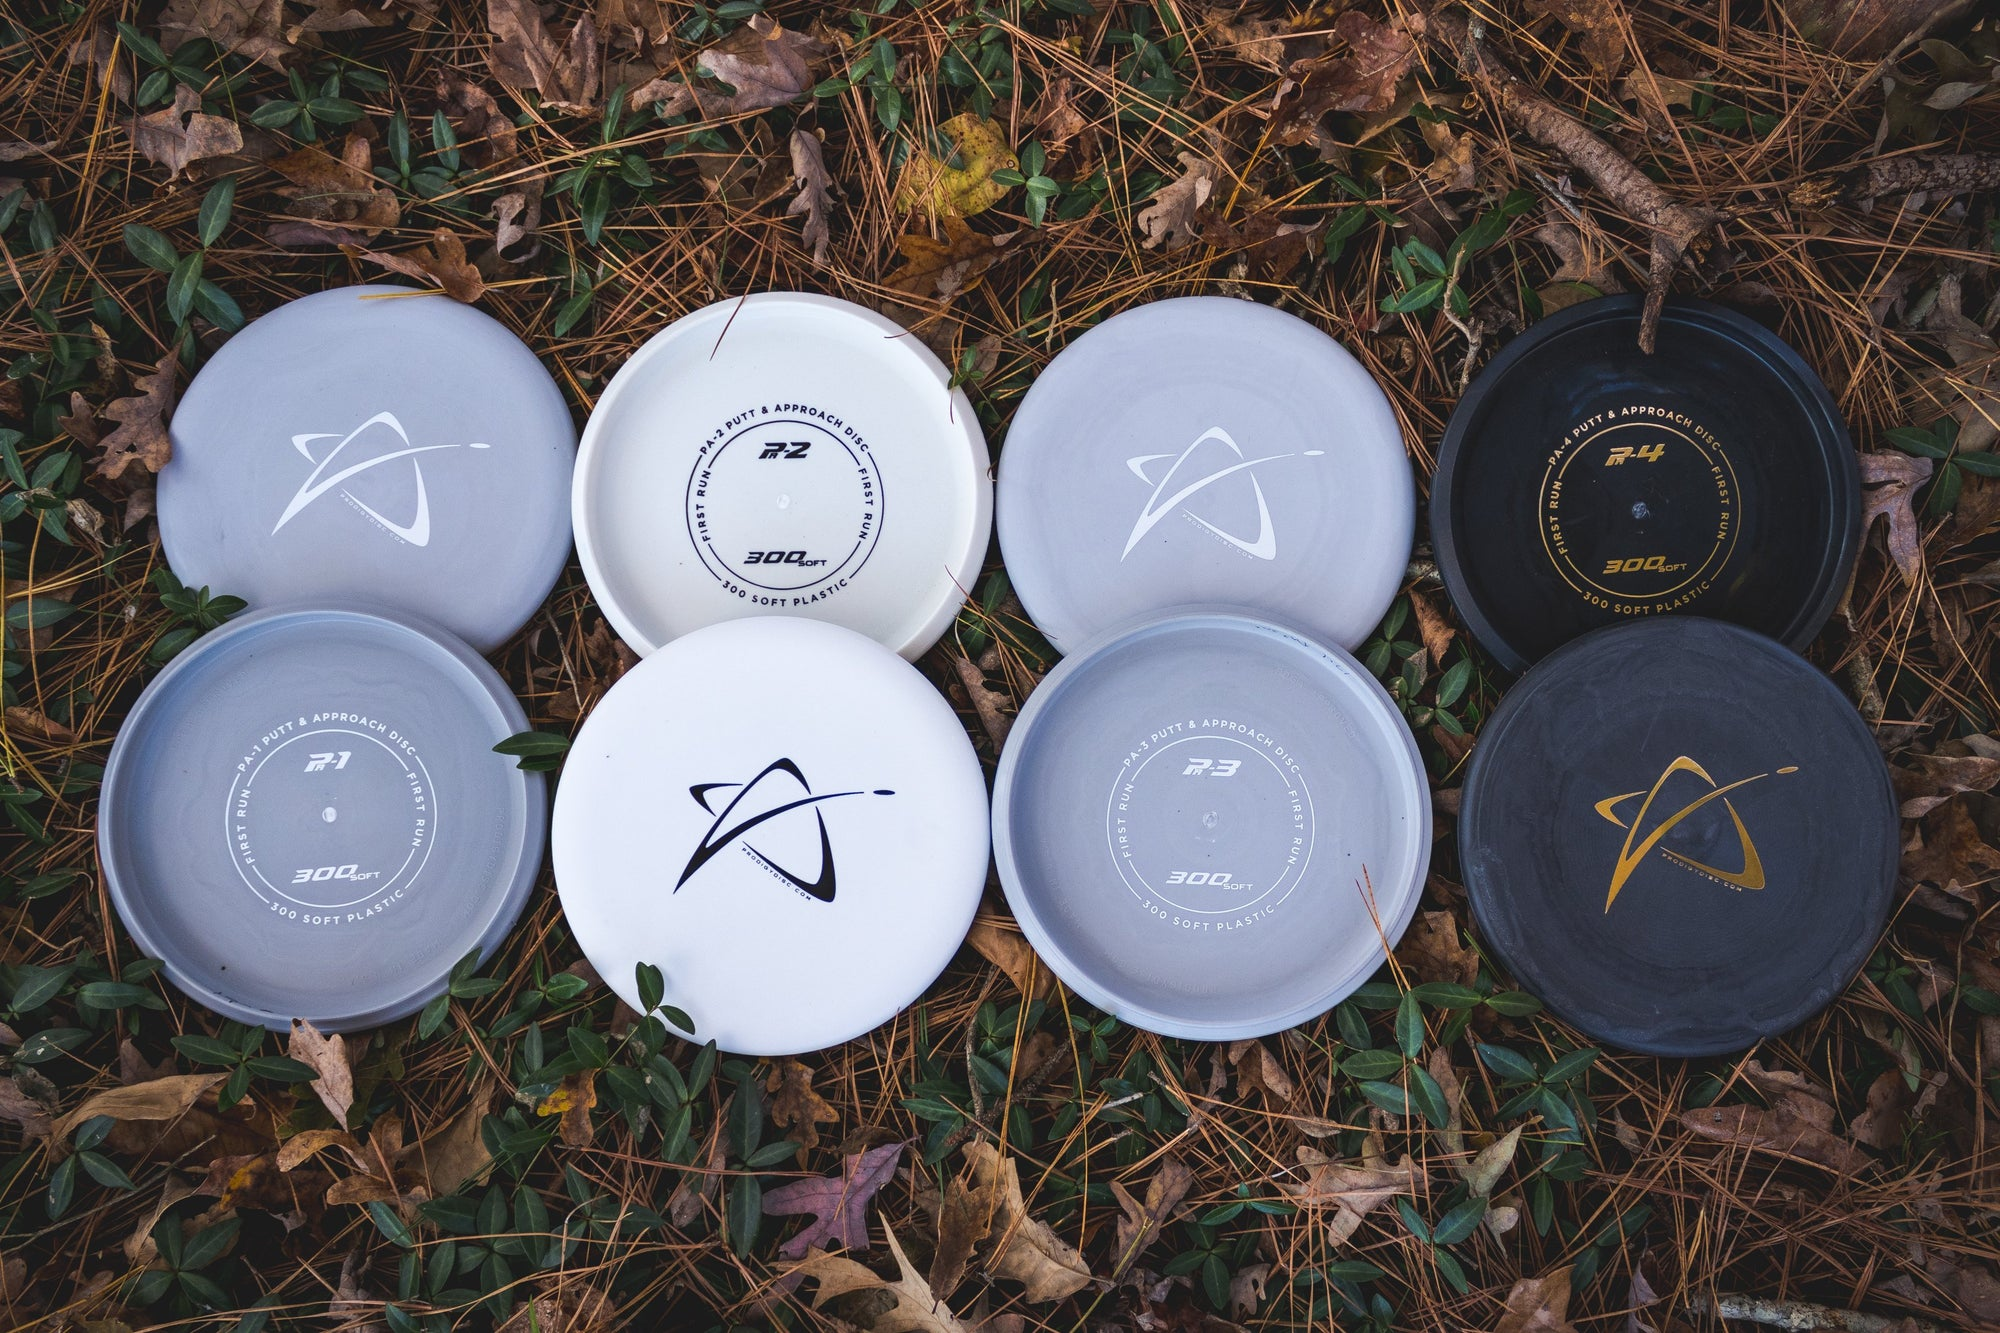 Introducing 300 Soft Plastic with Special Edition First Run November 29 | Prodigy Disc